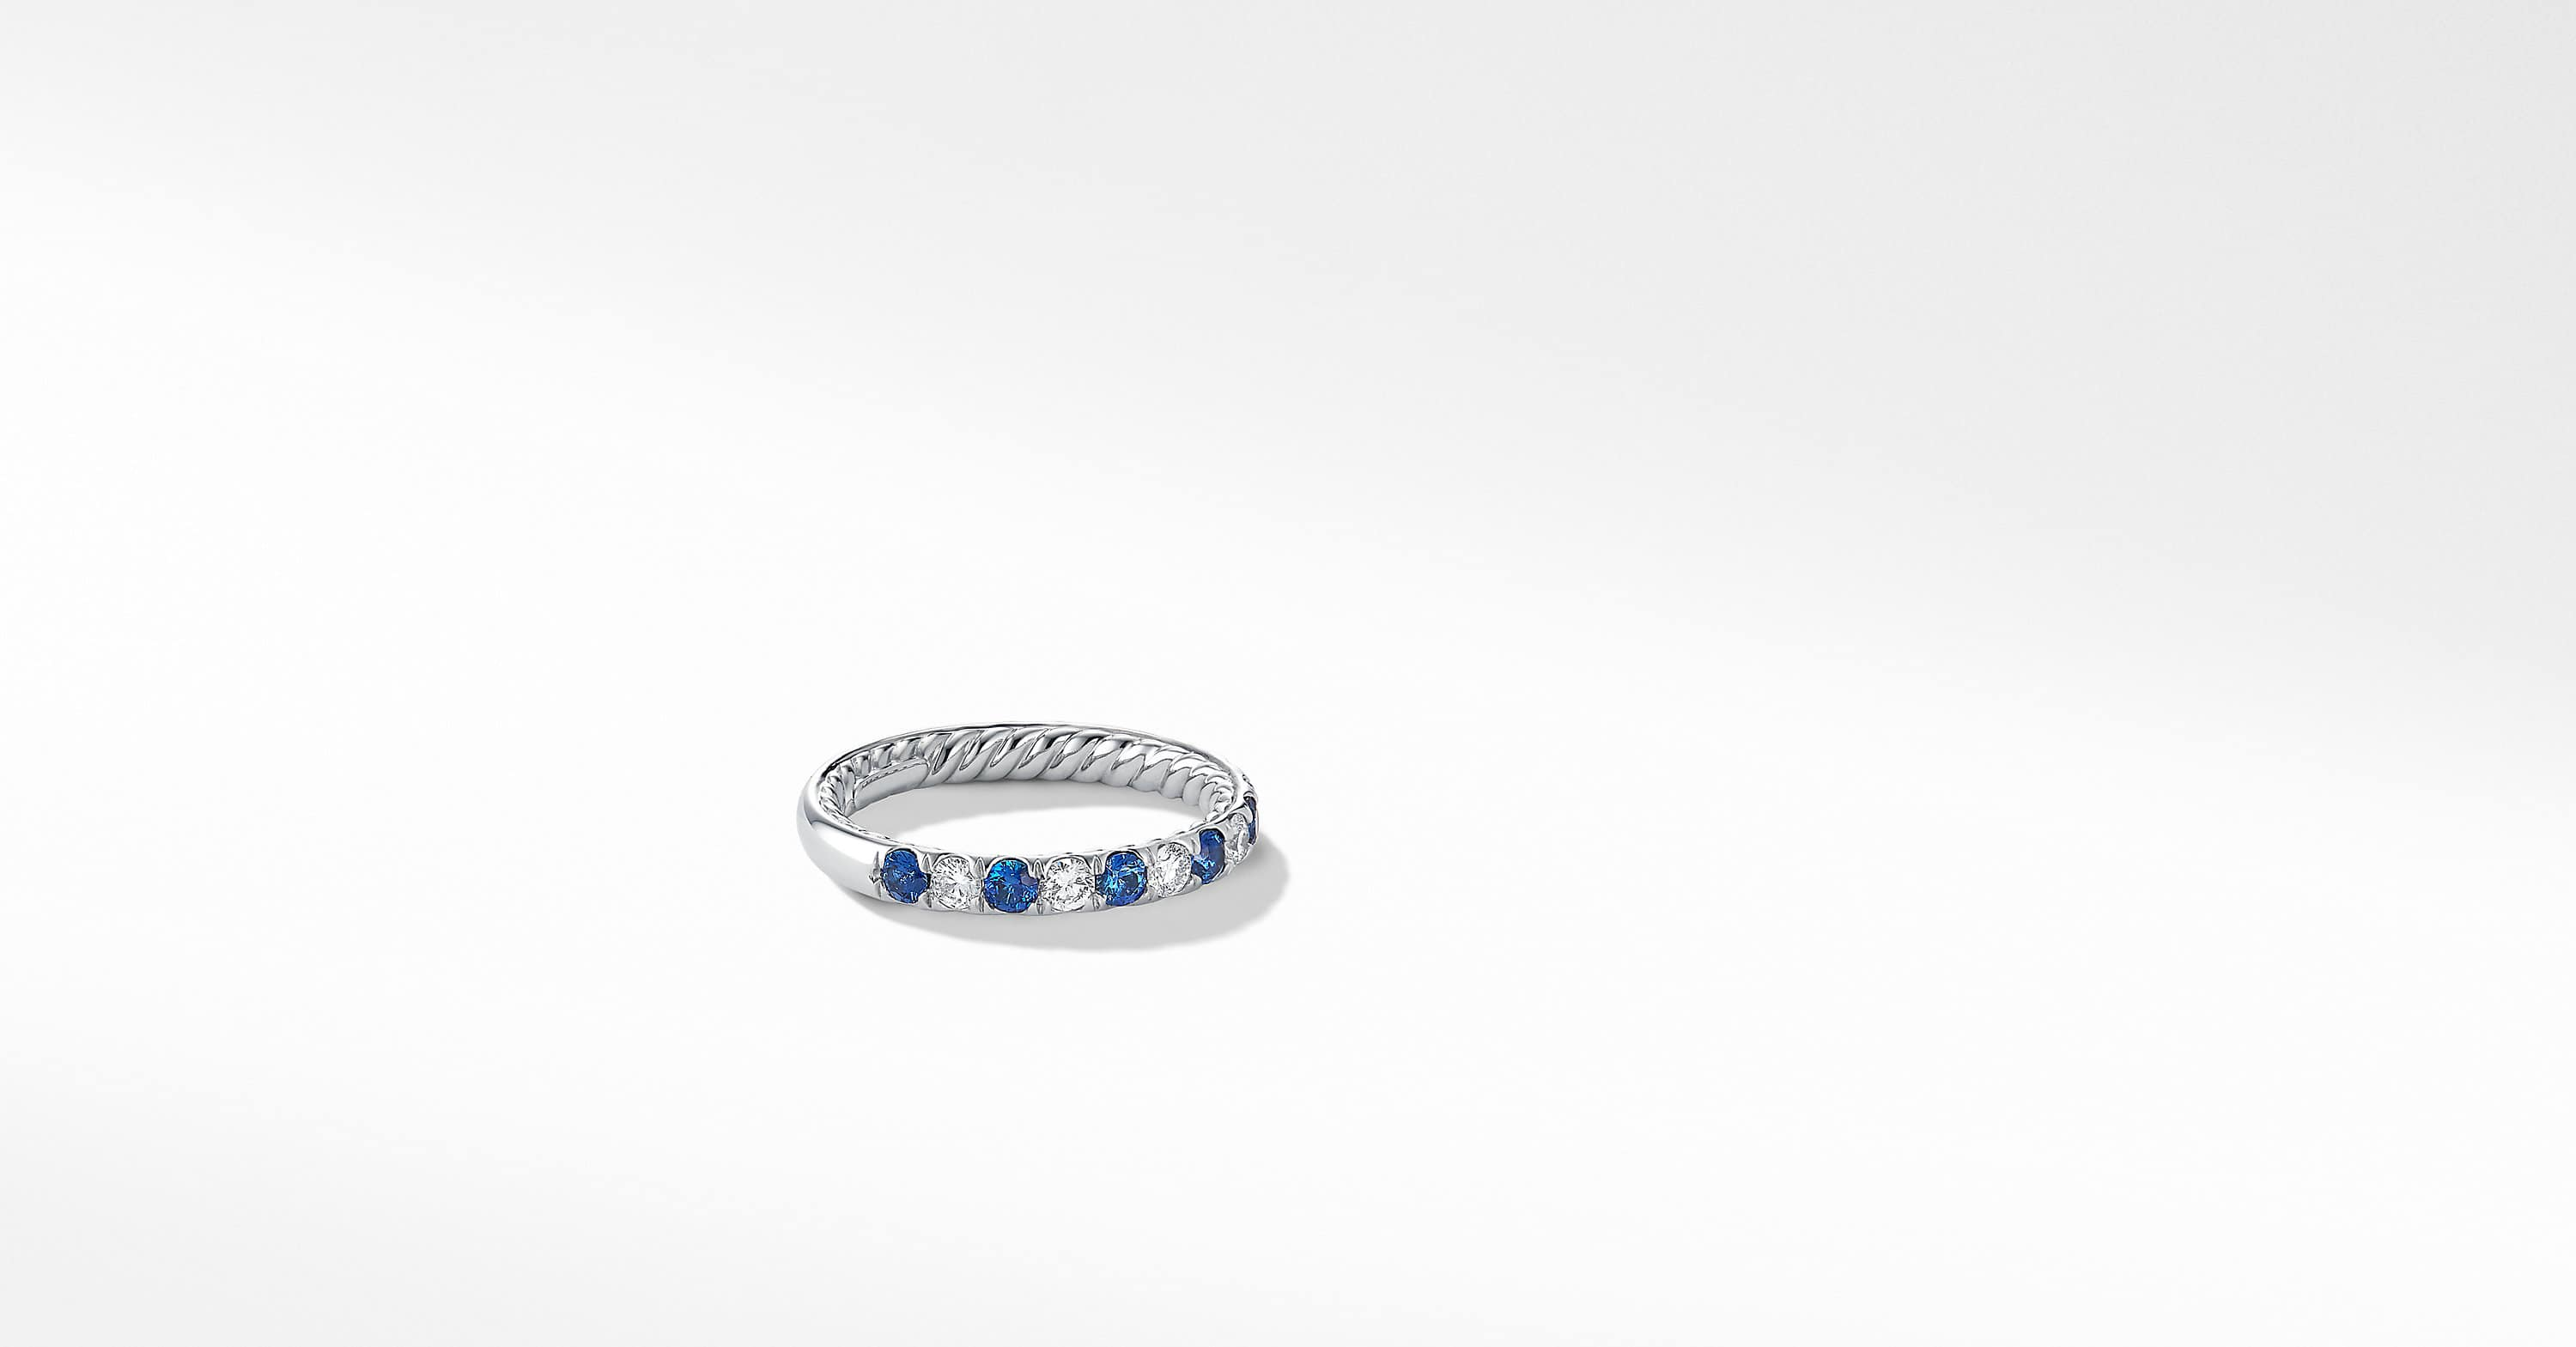 DY Eden Eternity Wedding Band with Diamonds in Platinum, 2.8mm